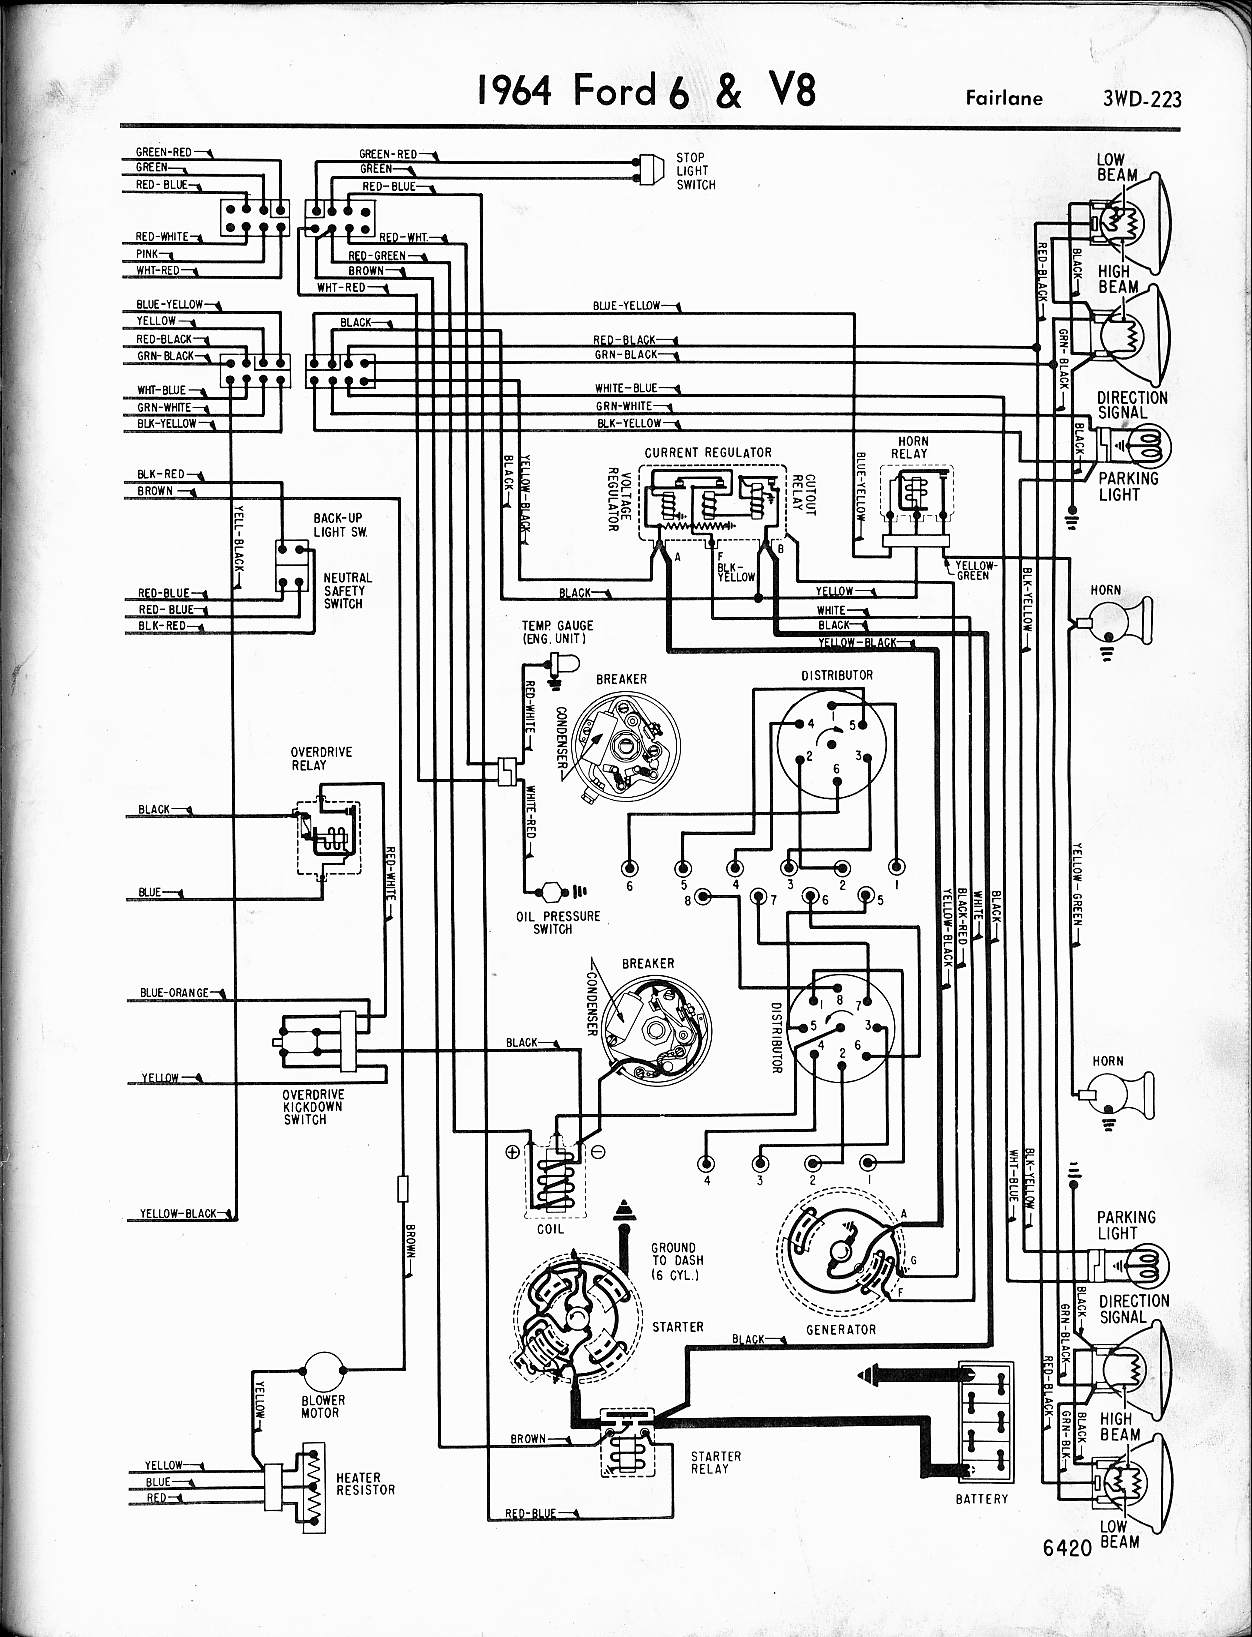 MWire5765 223 57 65 ford wiring diagrams Ford E 350 Wiring Diagrams at n-0.co